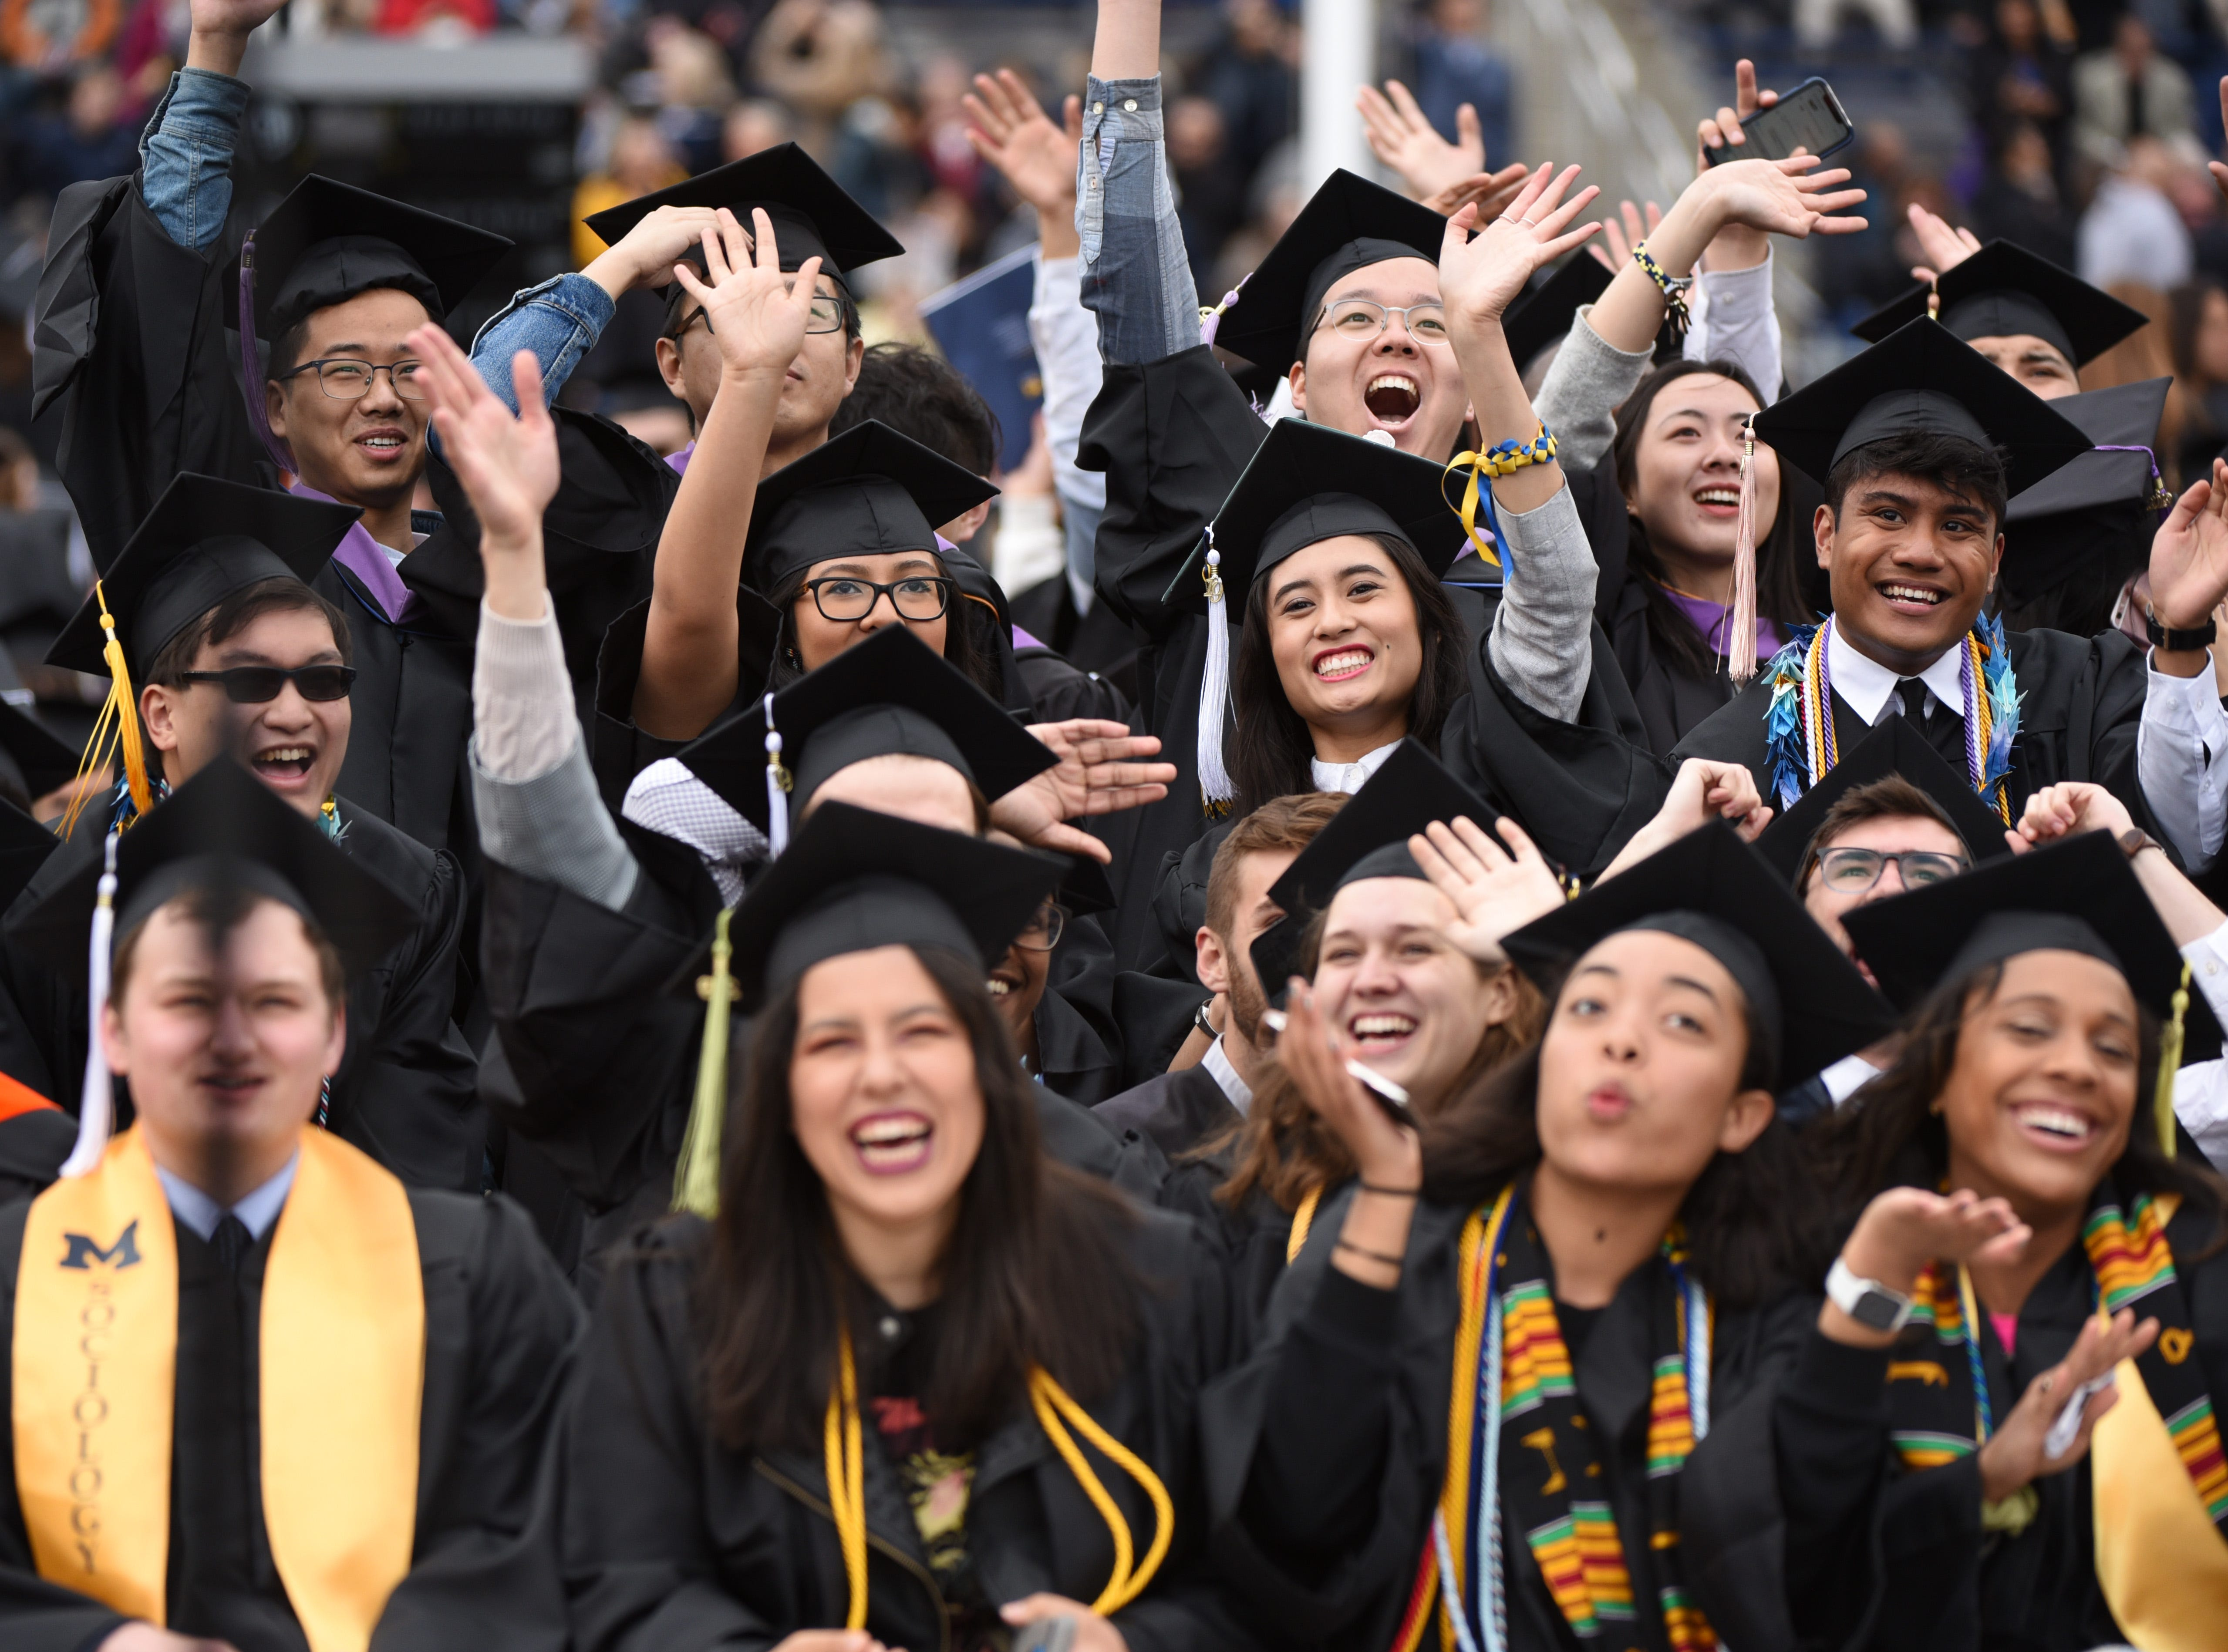 University of Michigan students celebrate during commencement.